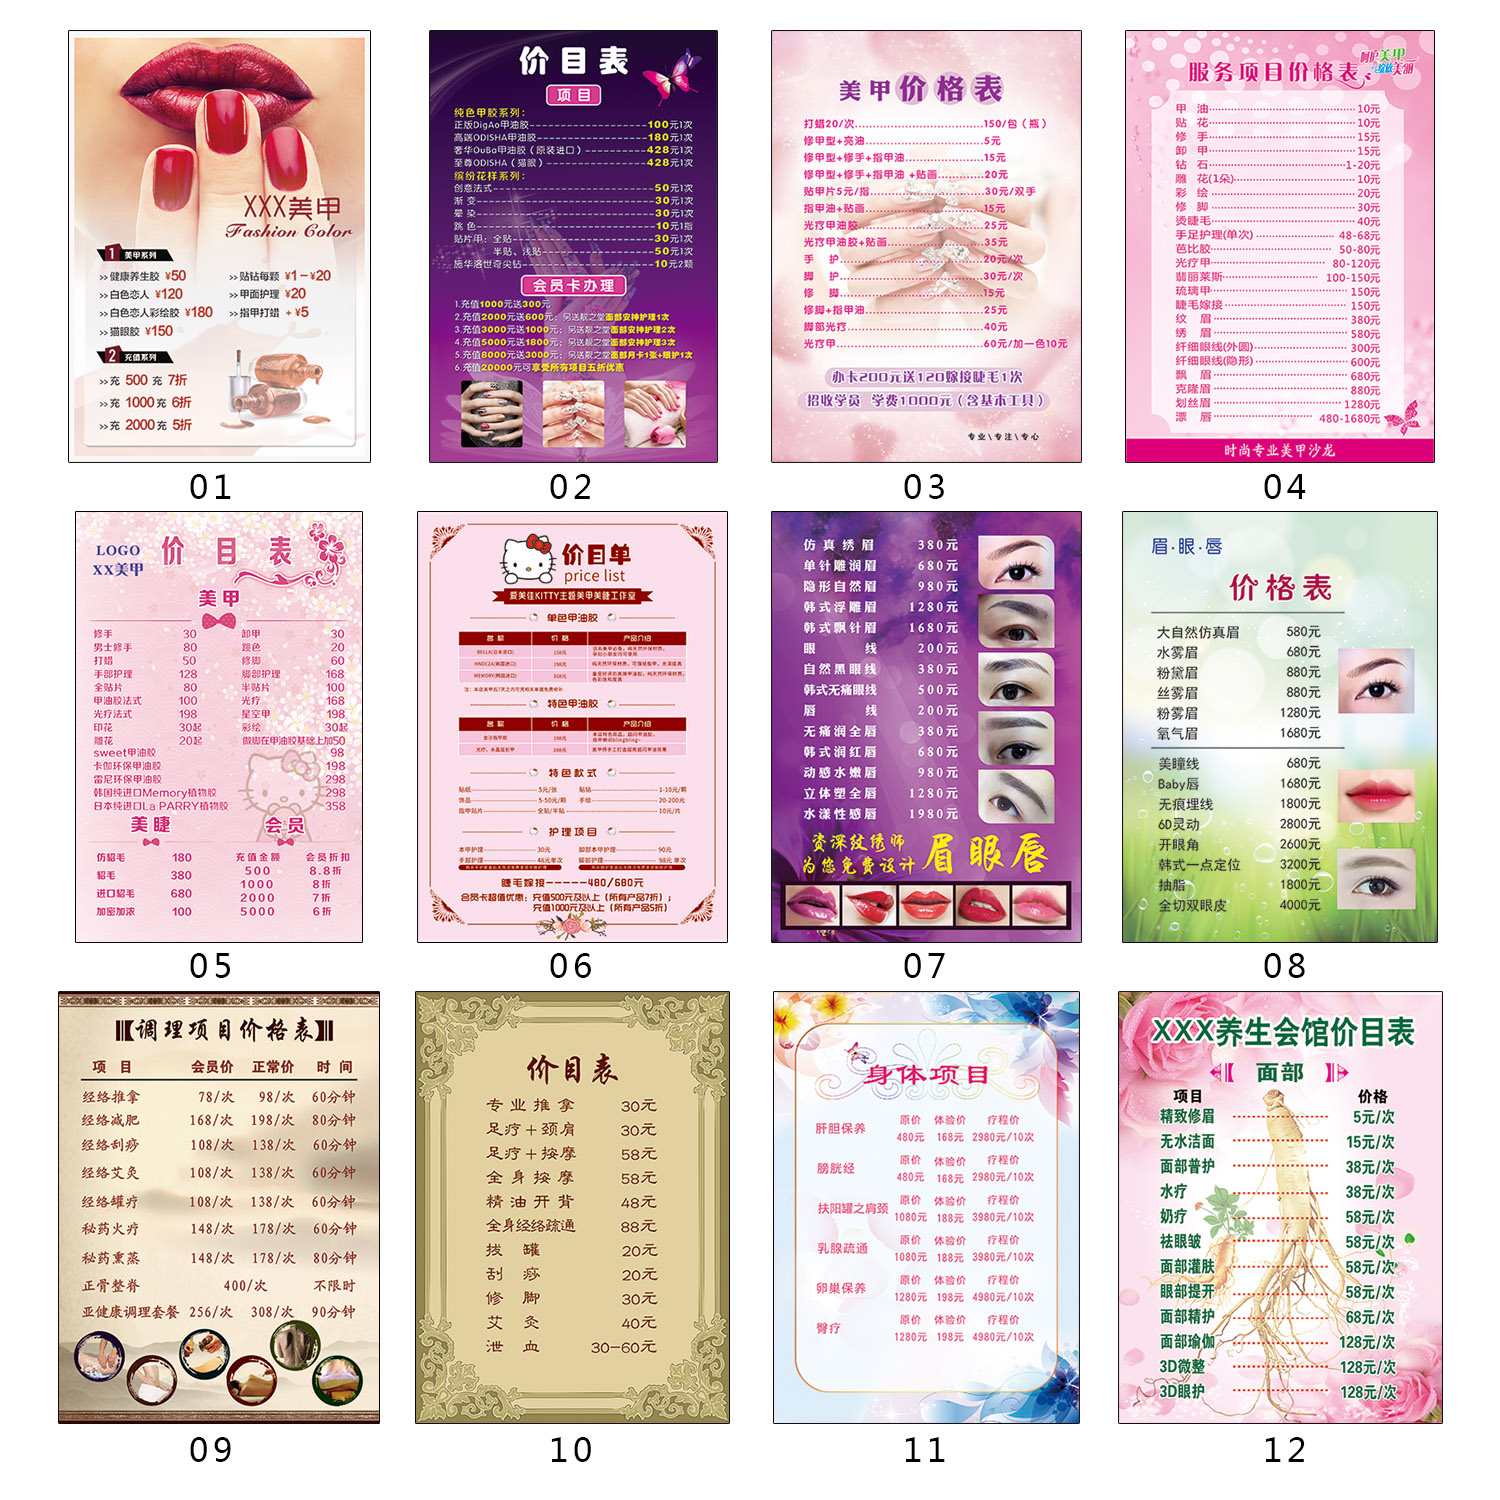 Beauty Salon Prices Beauty Salon Price List Item Price List Design Making Picture Poster Custom Advertising Sticker Poster Poster Poster Poster